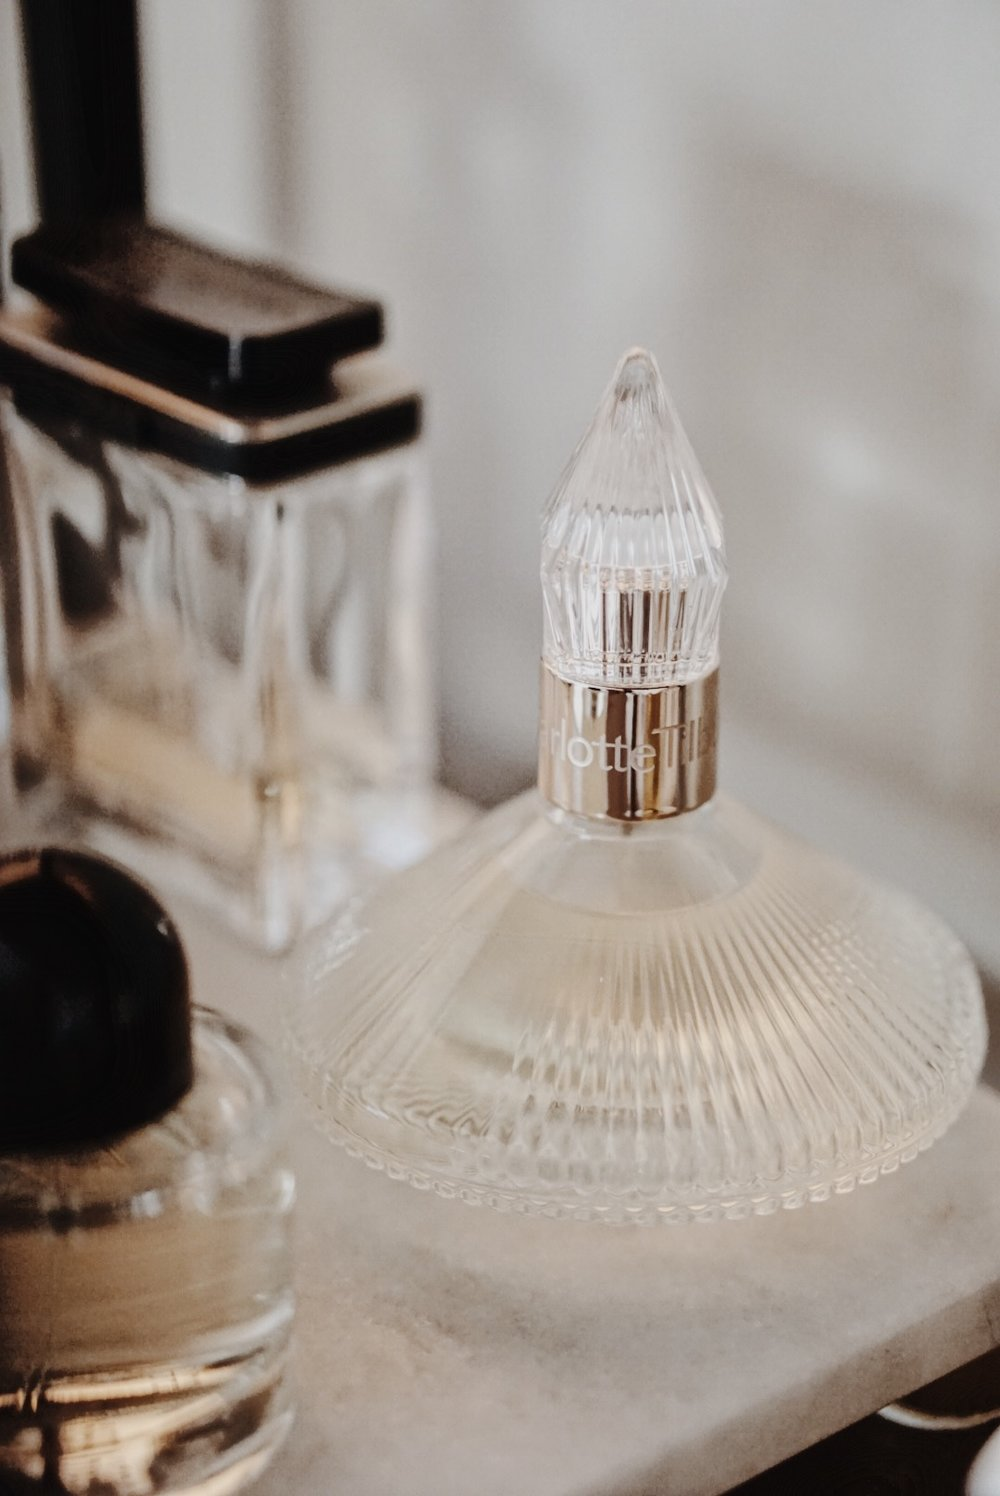 Fragrance Wardrobe - Charlotte Tilbury Scent of a Dream